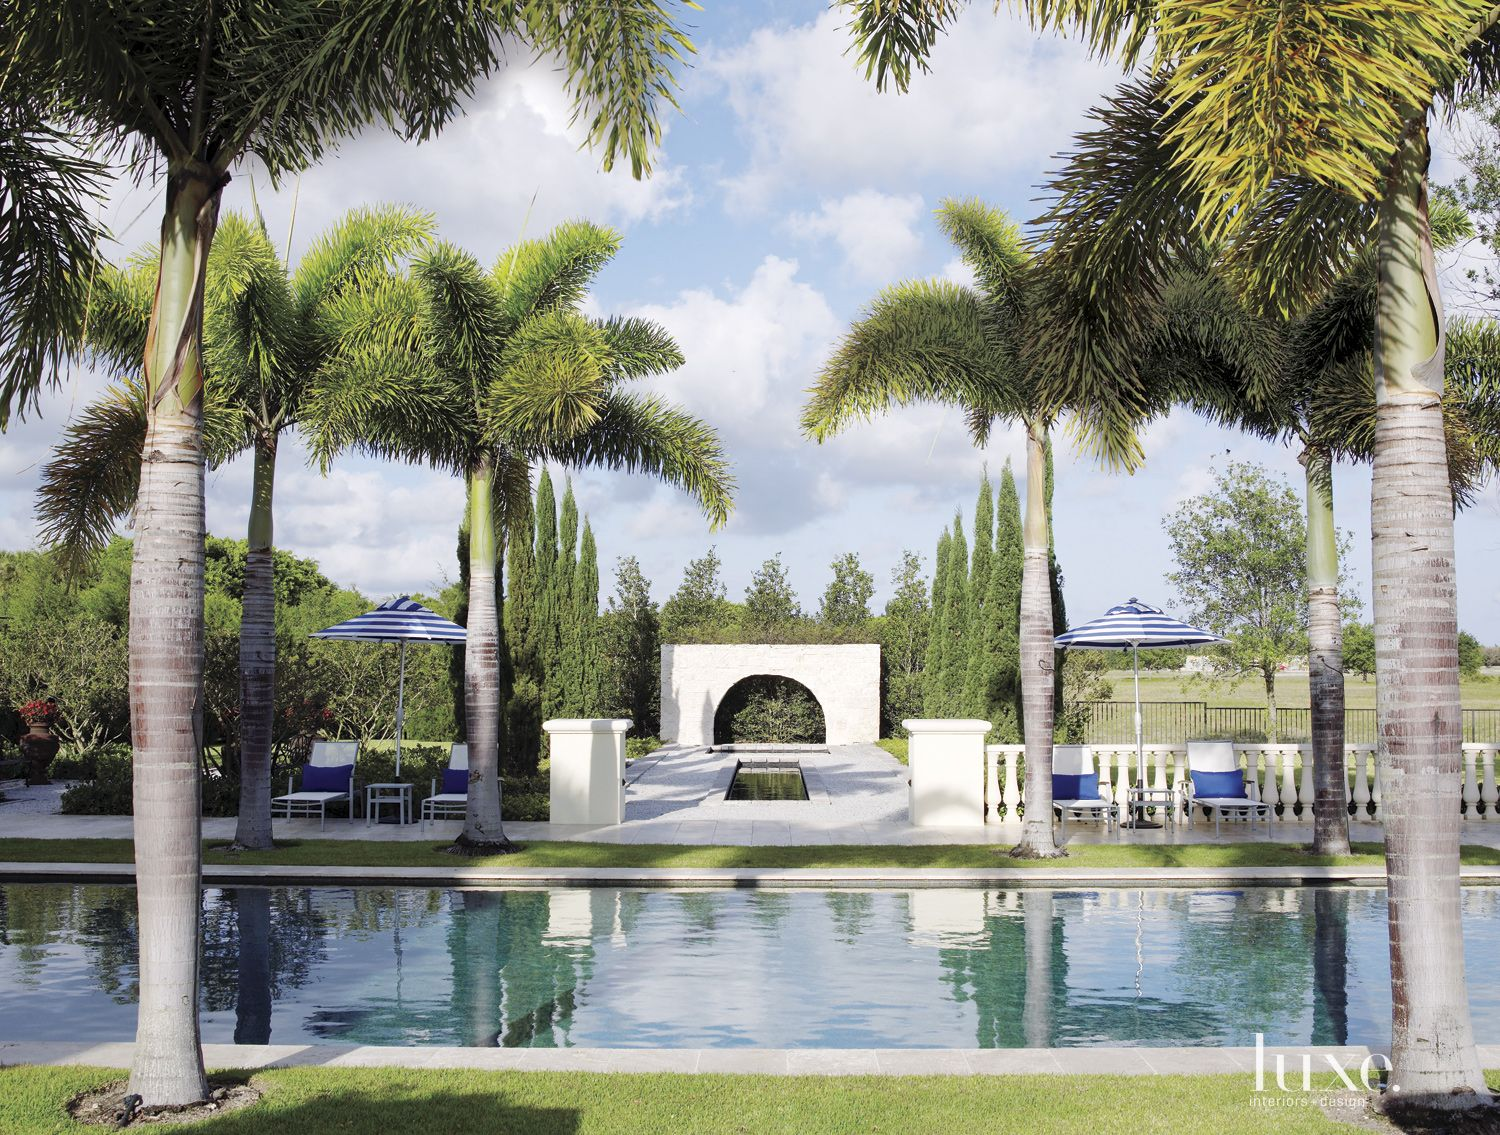 Contemporary Neutral Poolside with Countryside Landscaping